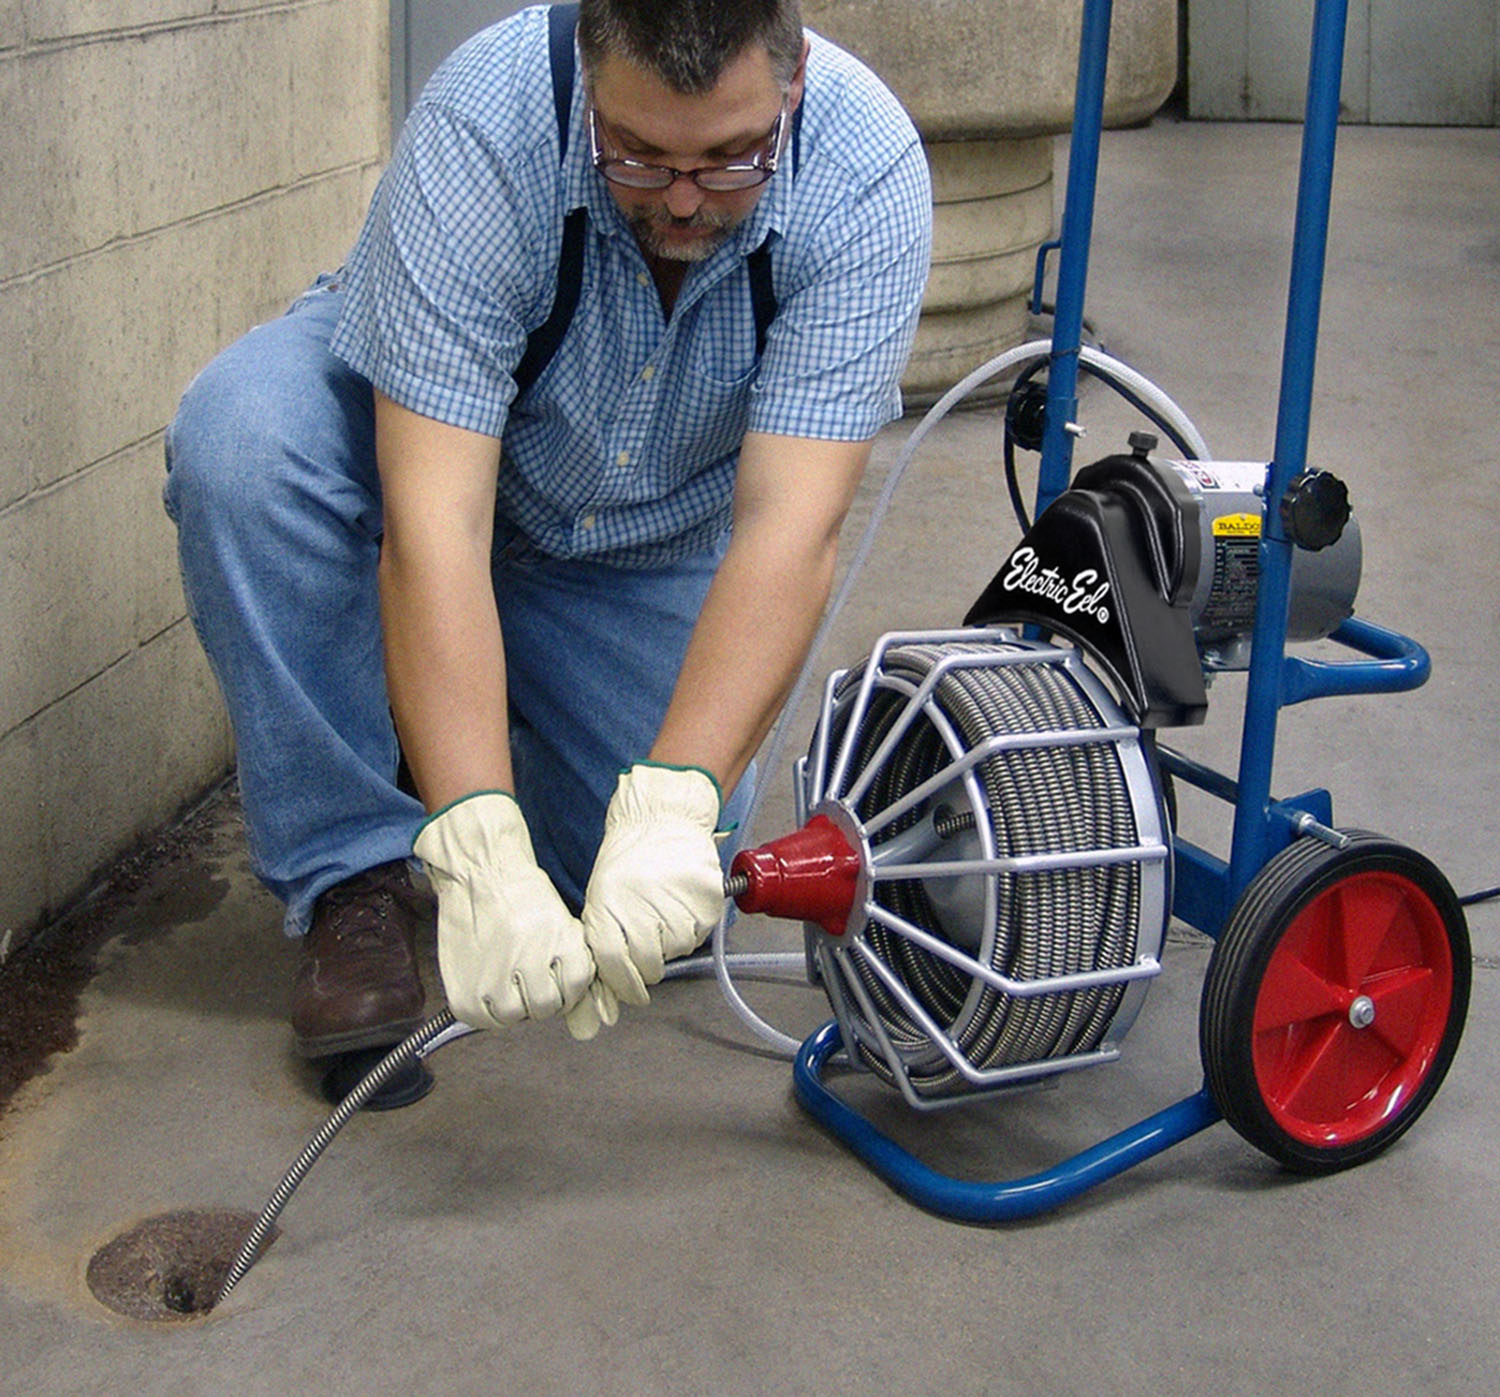 This drain cleaning machine features 2-way auto cable feed with hands off rotating cable for added safety.